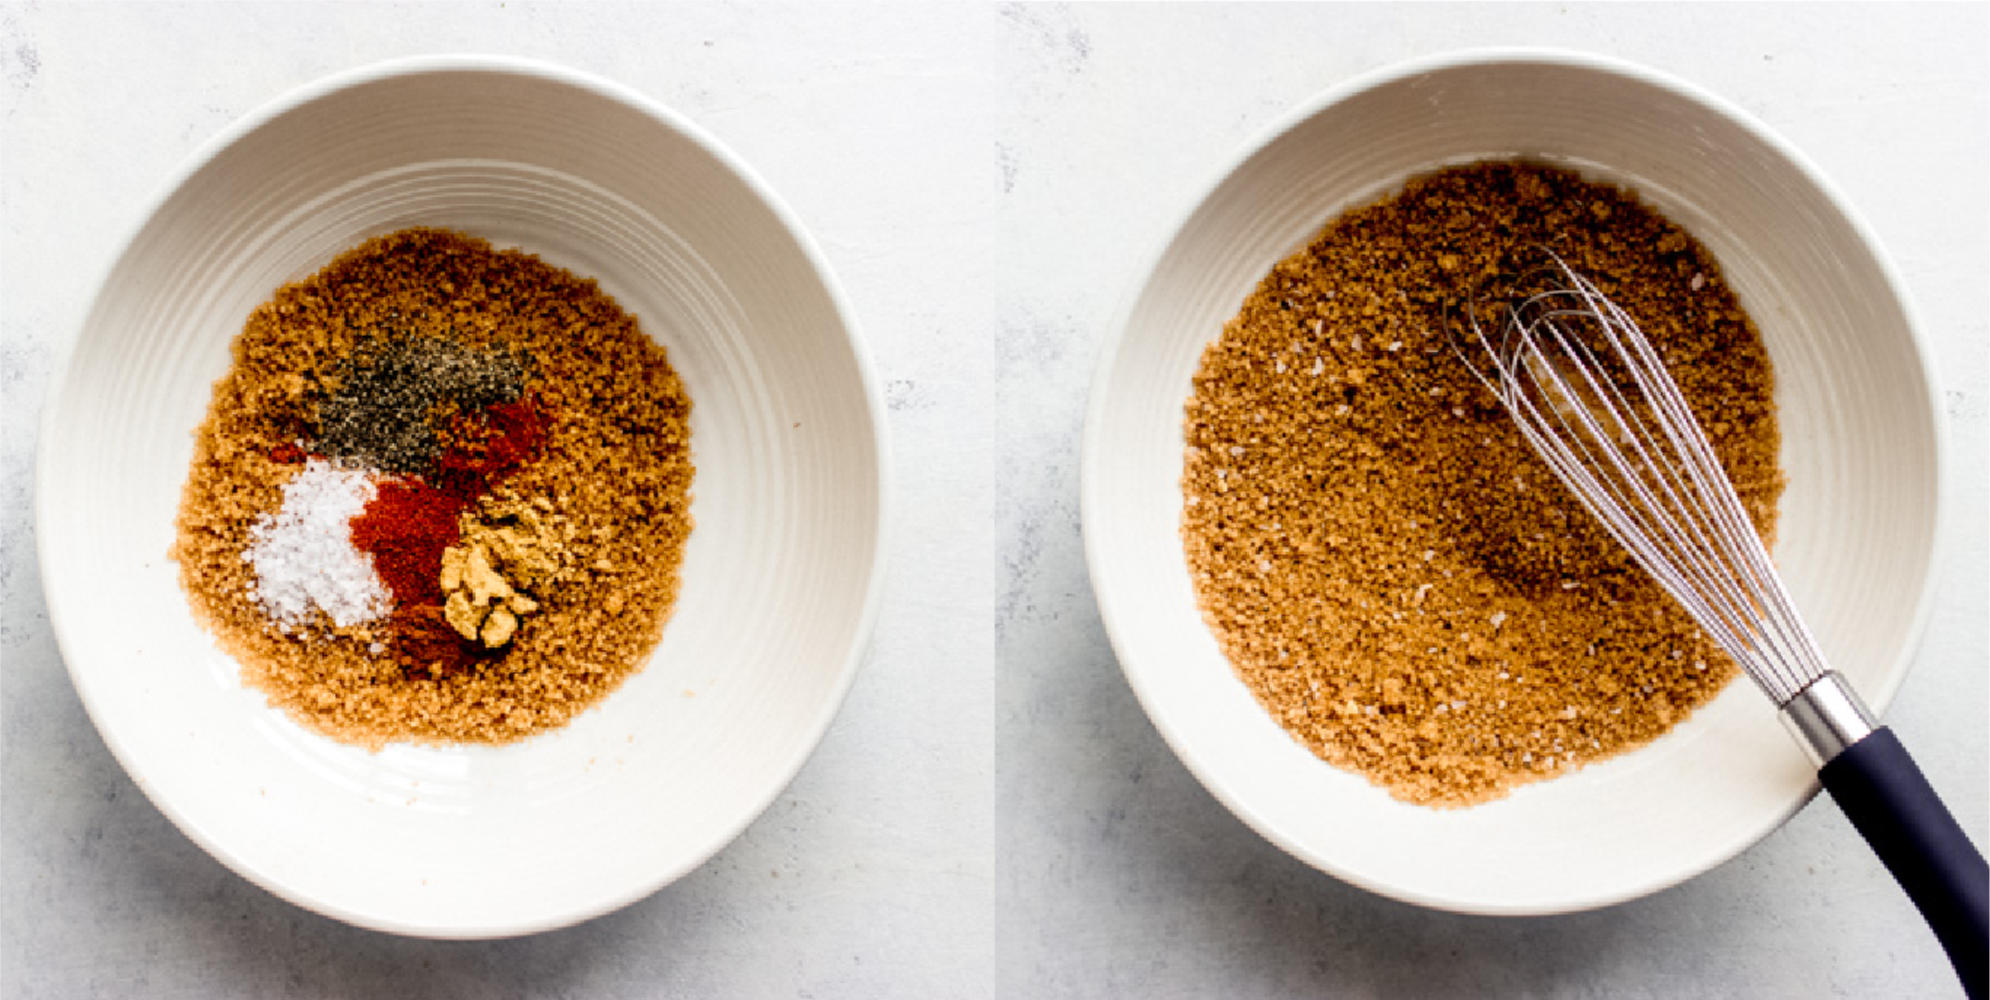 spice mixture for sweet and spicy walnuts recipe